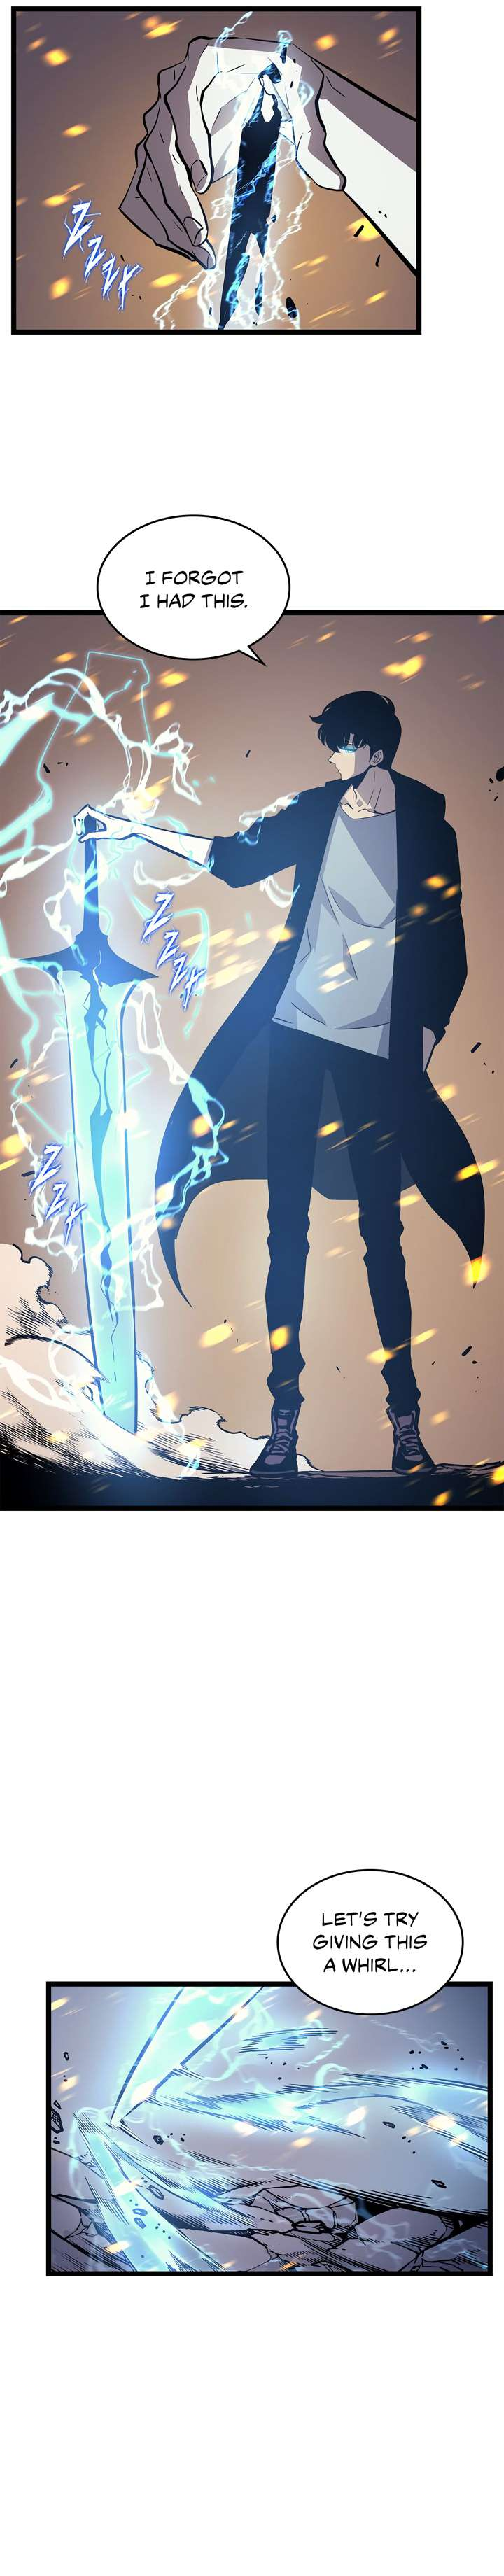 Solo Leveling Chapter 105 Page 23